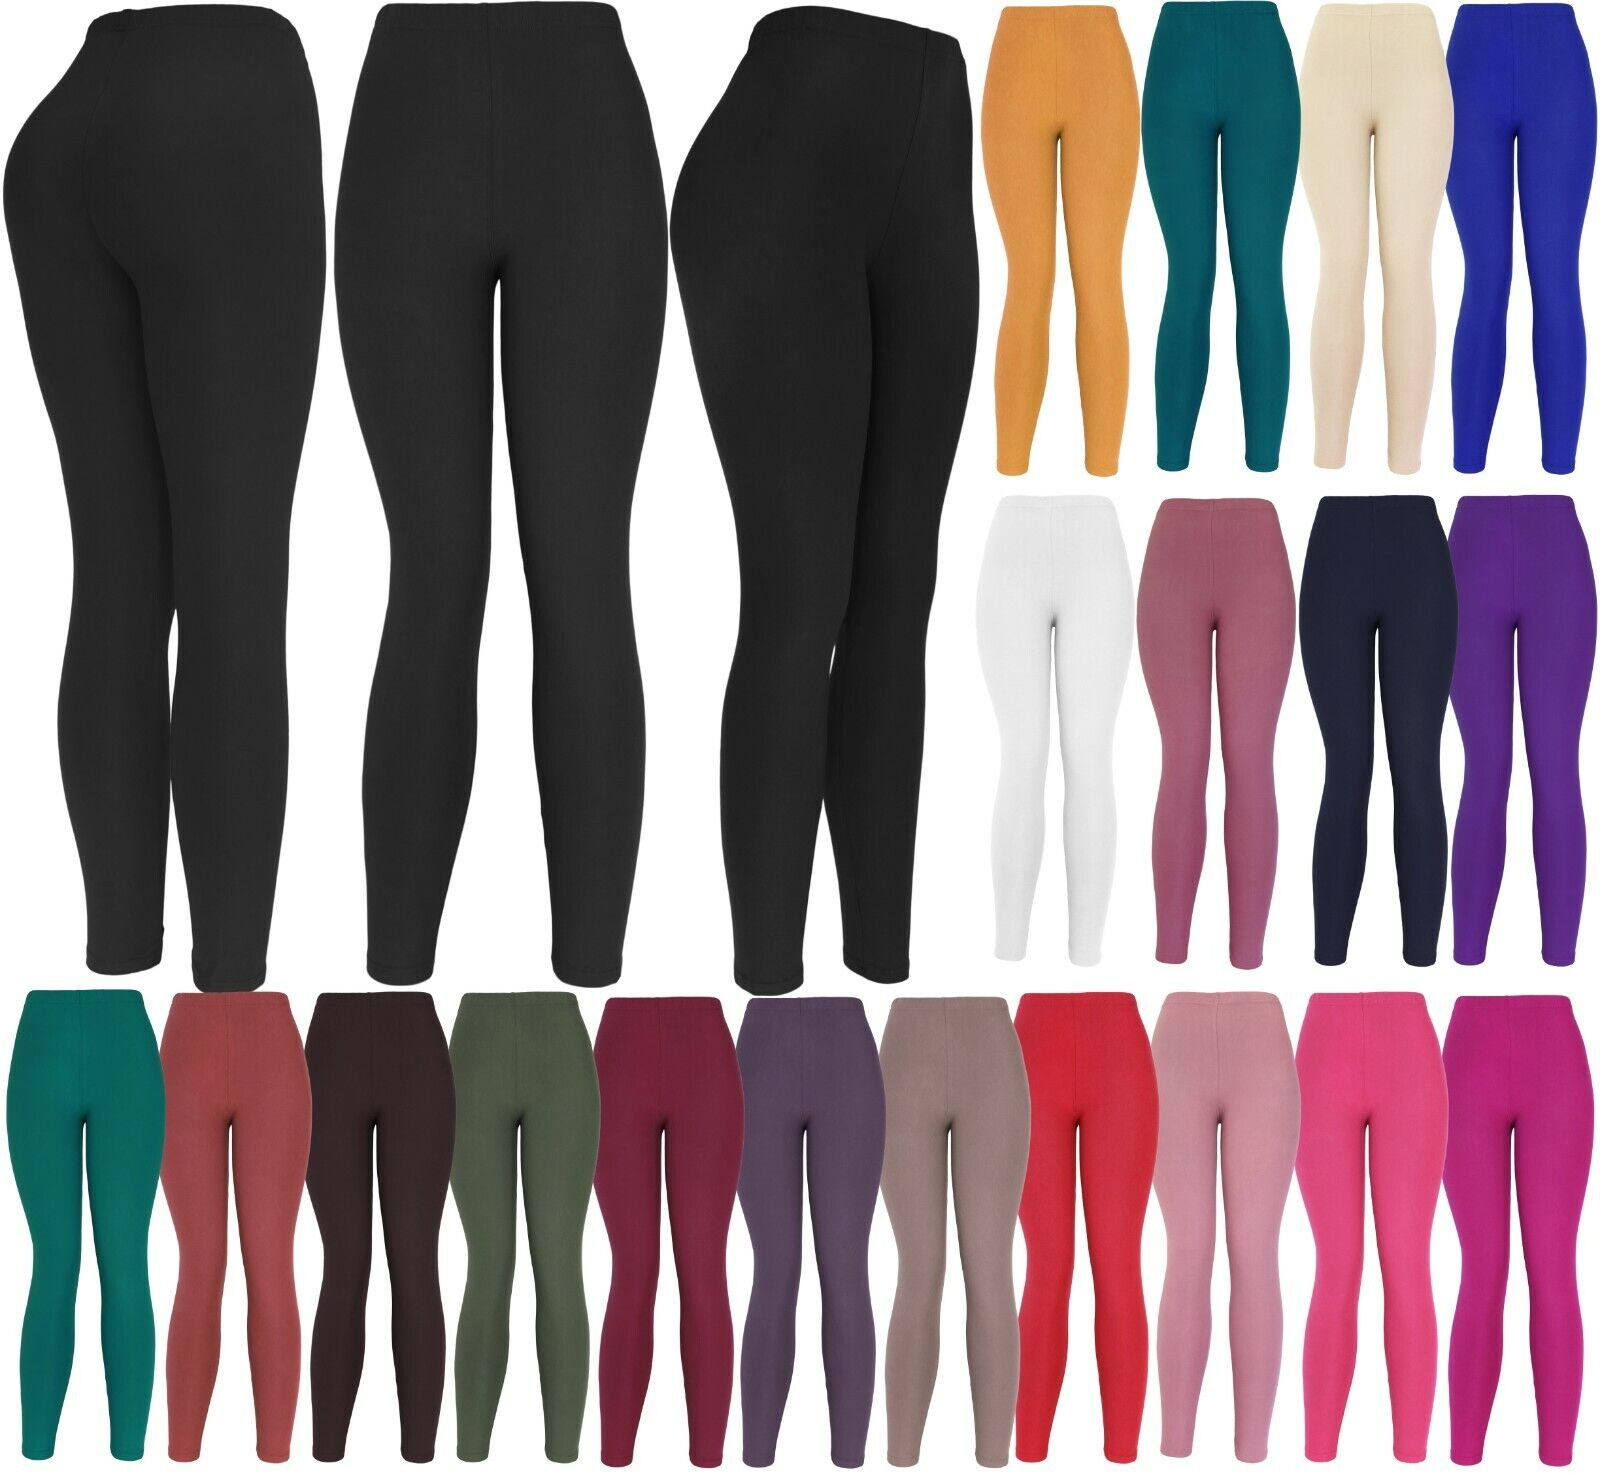 Ultra Soft Solid Brushed Basic Full Regular/Plus Leggings Clothing, Shoes & Accessories